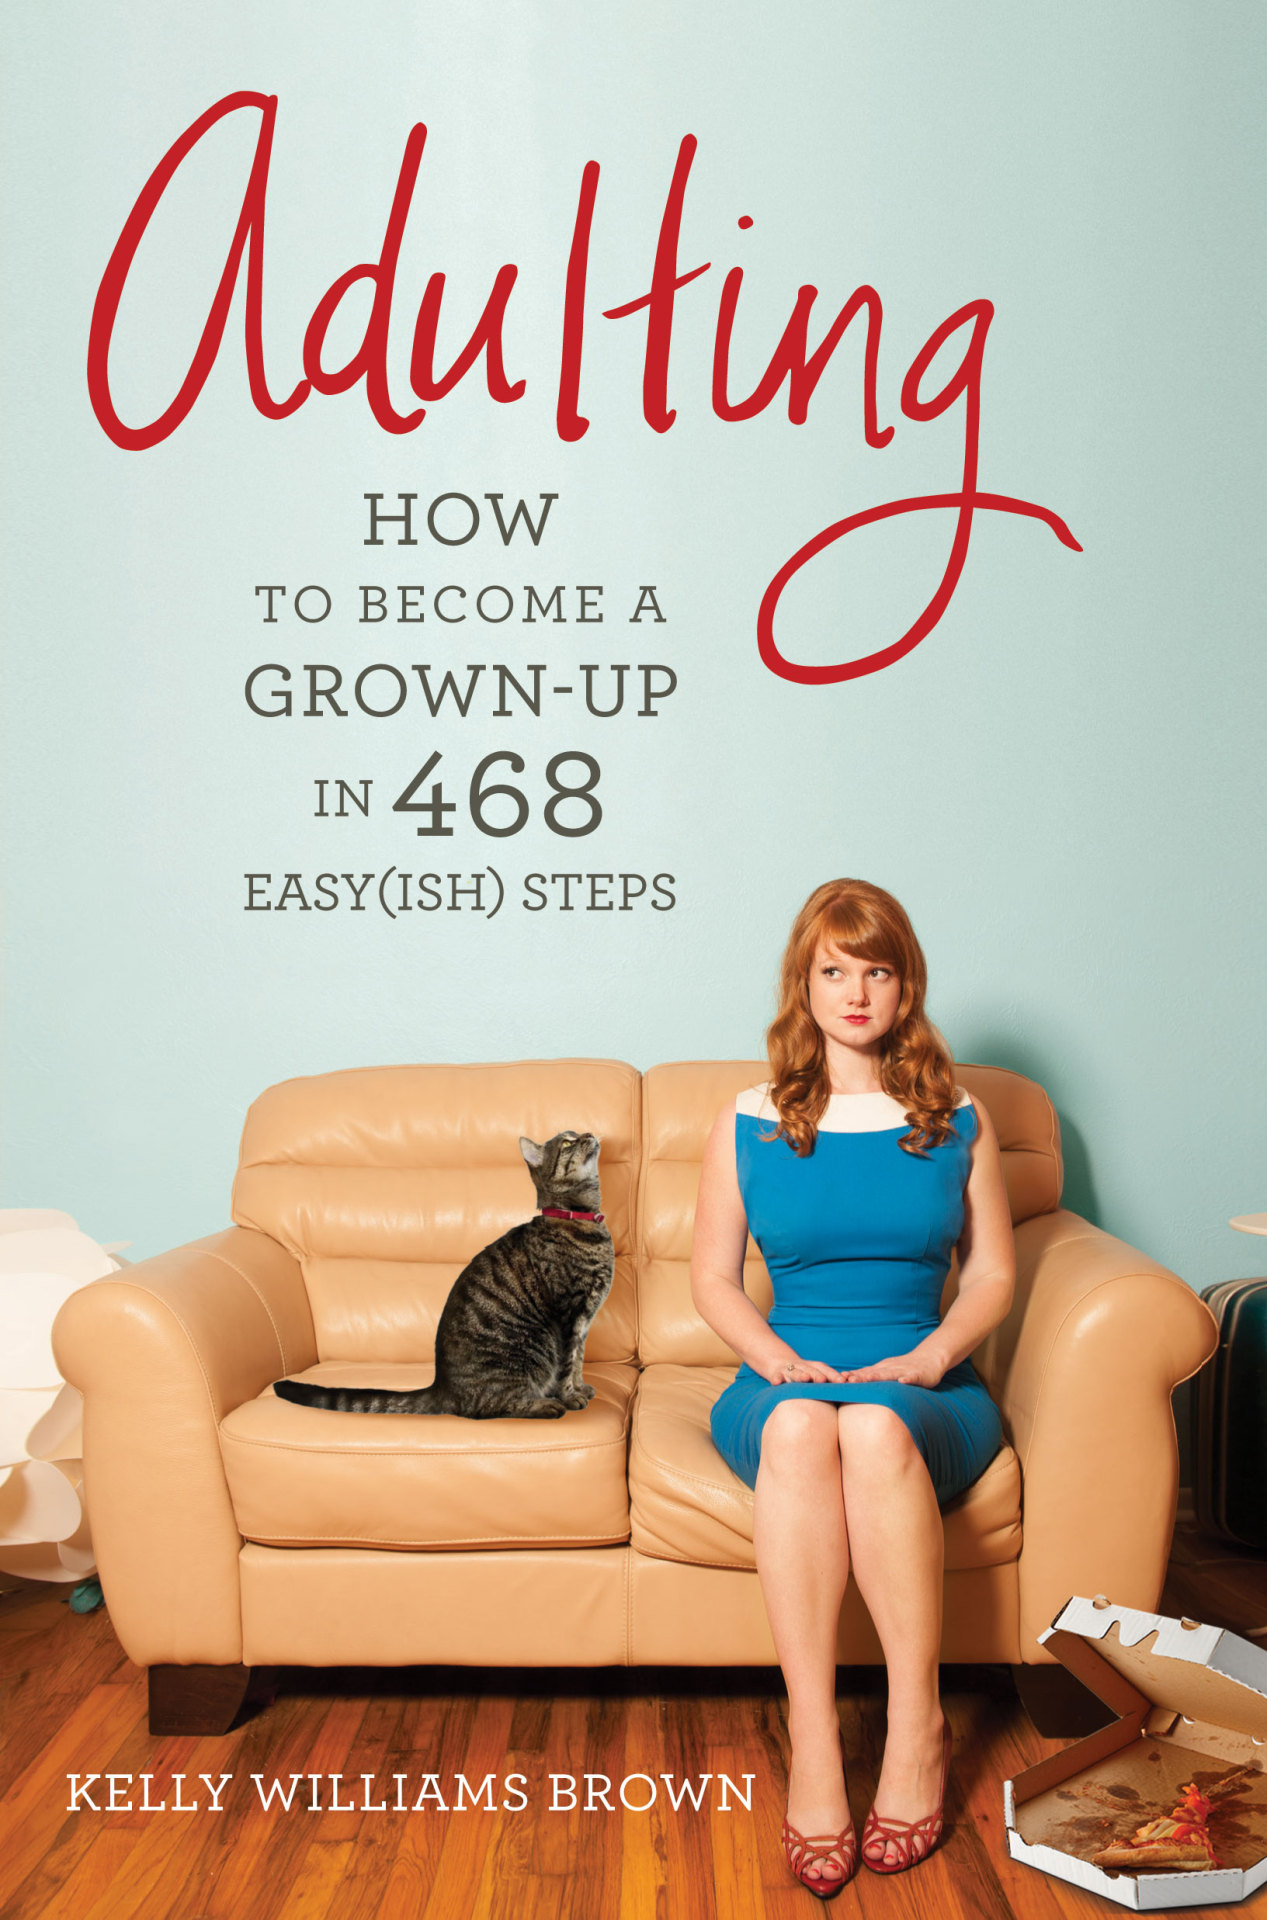 "ADULTING IS OUT TODAY! This is THE book to read if you're having a little bit (or a lot) of trouble transitioning from college life to REAL adulthood life. It's tough, but with Kelly's tips and how-to's in hand, you'll be ready to take on the world. Promise!  Book Description:   If you graduated from college but still feel like a student … if you wear a business suit to job interviews but pajamas to the grocery store … if you have your own apartment but no idea how to cook or clean … it's OK. But it doesn't have to be this way.Just because you don't feel like an adult doesn't mean you can't act like one. And it all begins with this funny, wise, and useful book. Based on Kelly Williams Brown's popular blog, ADULTING makes the scary, confusing ""real world"" approachable, manageable-and even conquerable. This guide will help you to navigate the stormy Sea of Adulthood so that you may find safe harbor in Not Running Out of Toilet Paper Bay, and along the way you will learn: What to check for when renting a new apartment-Not just the nearby bars, but the faucets and stove, among other things. When a busy person can find time to learn more about the world- It involves the intersection of NPR and hair-straightening. How to avoid hooking up with anyone in your office — Imagine your coworkers having plastic, featureless doll crotches. It helps. The secret to finding a mechanic you love-Or, more realistically, one that will not rob you blind. From breaking up with frenemies to fixing your toilet, this way fun comprehensive handbook is the answer for aspiring grown-ups of all ages."